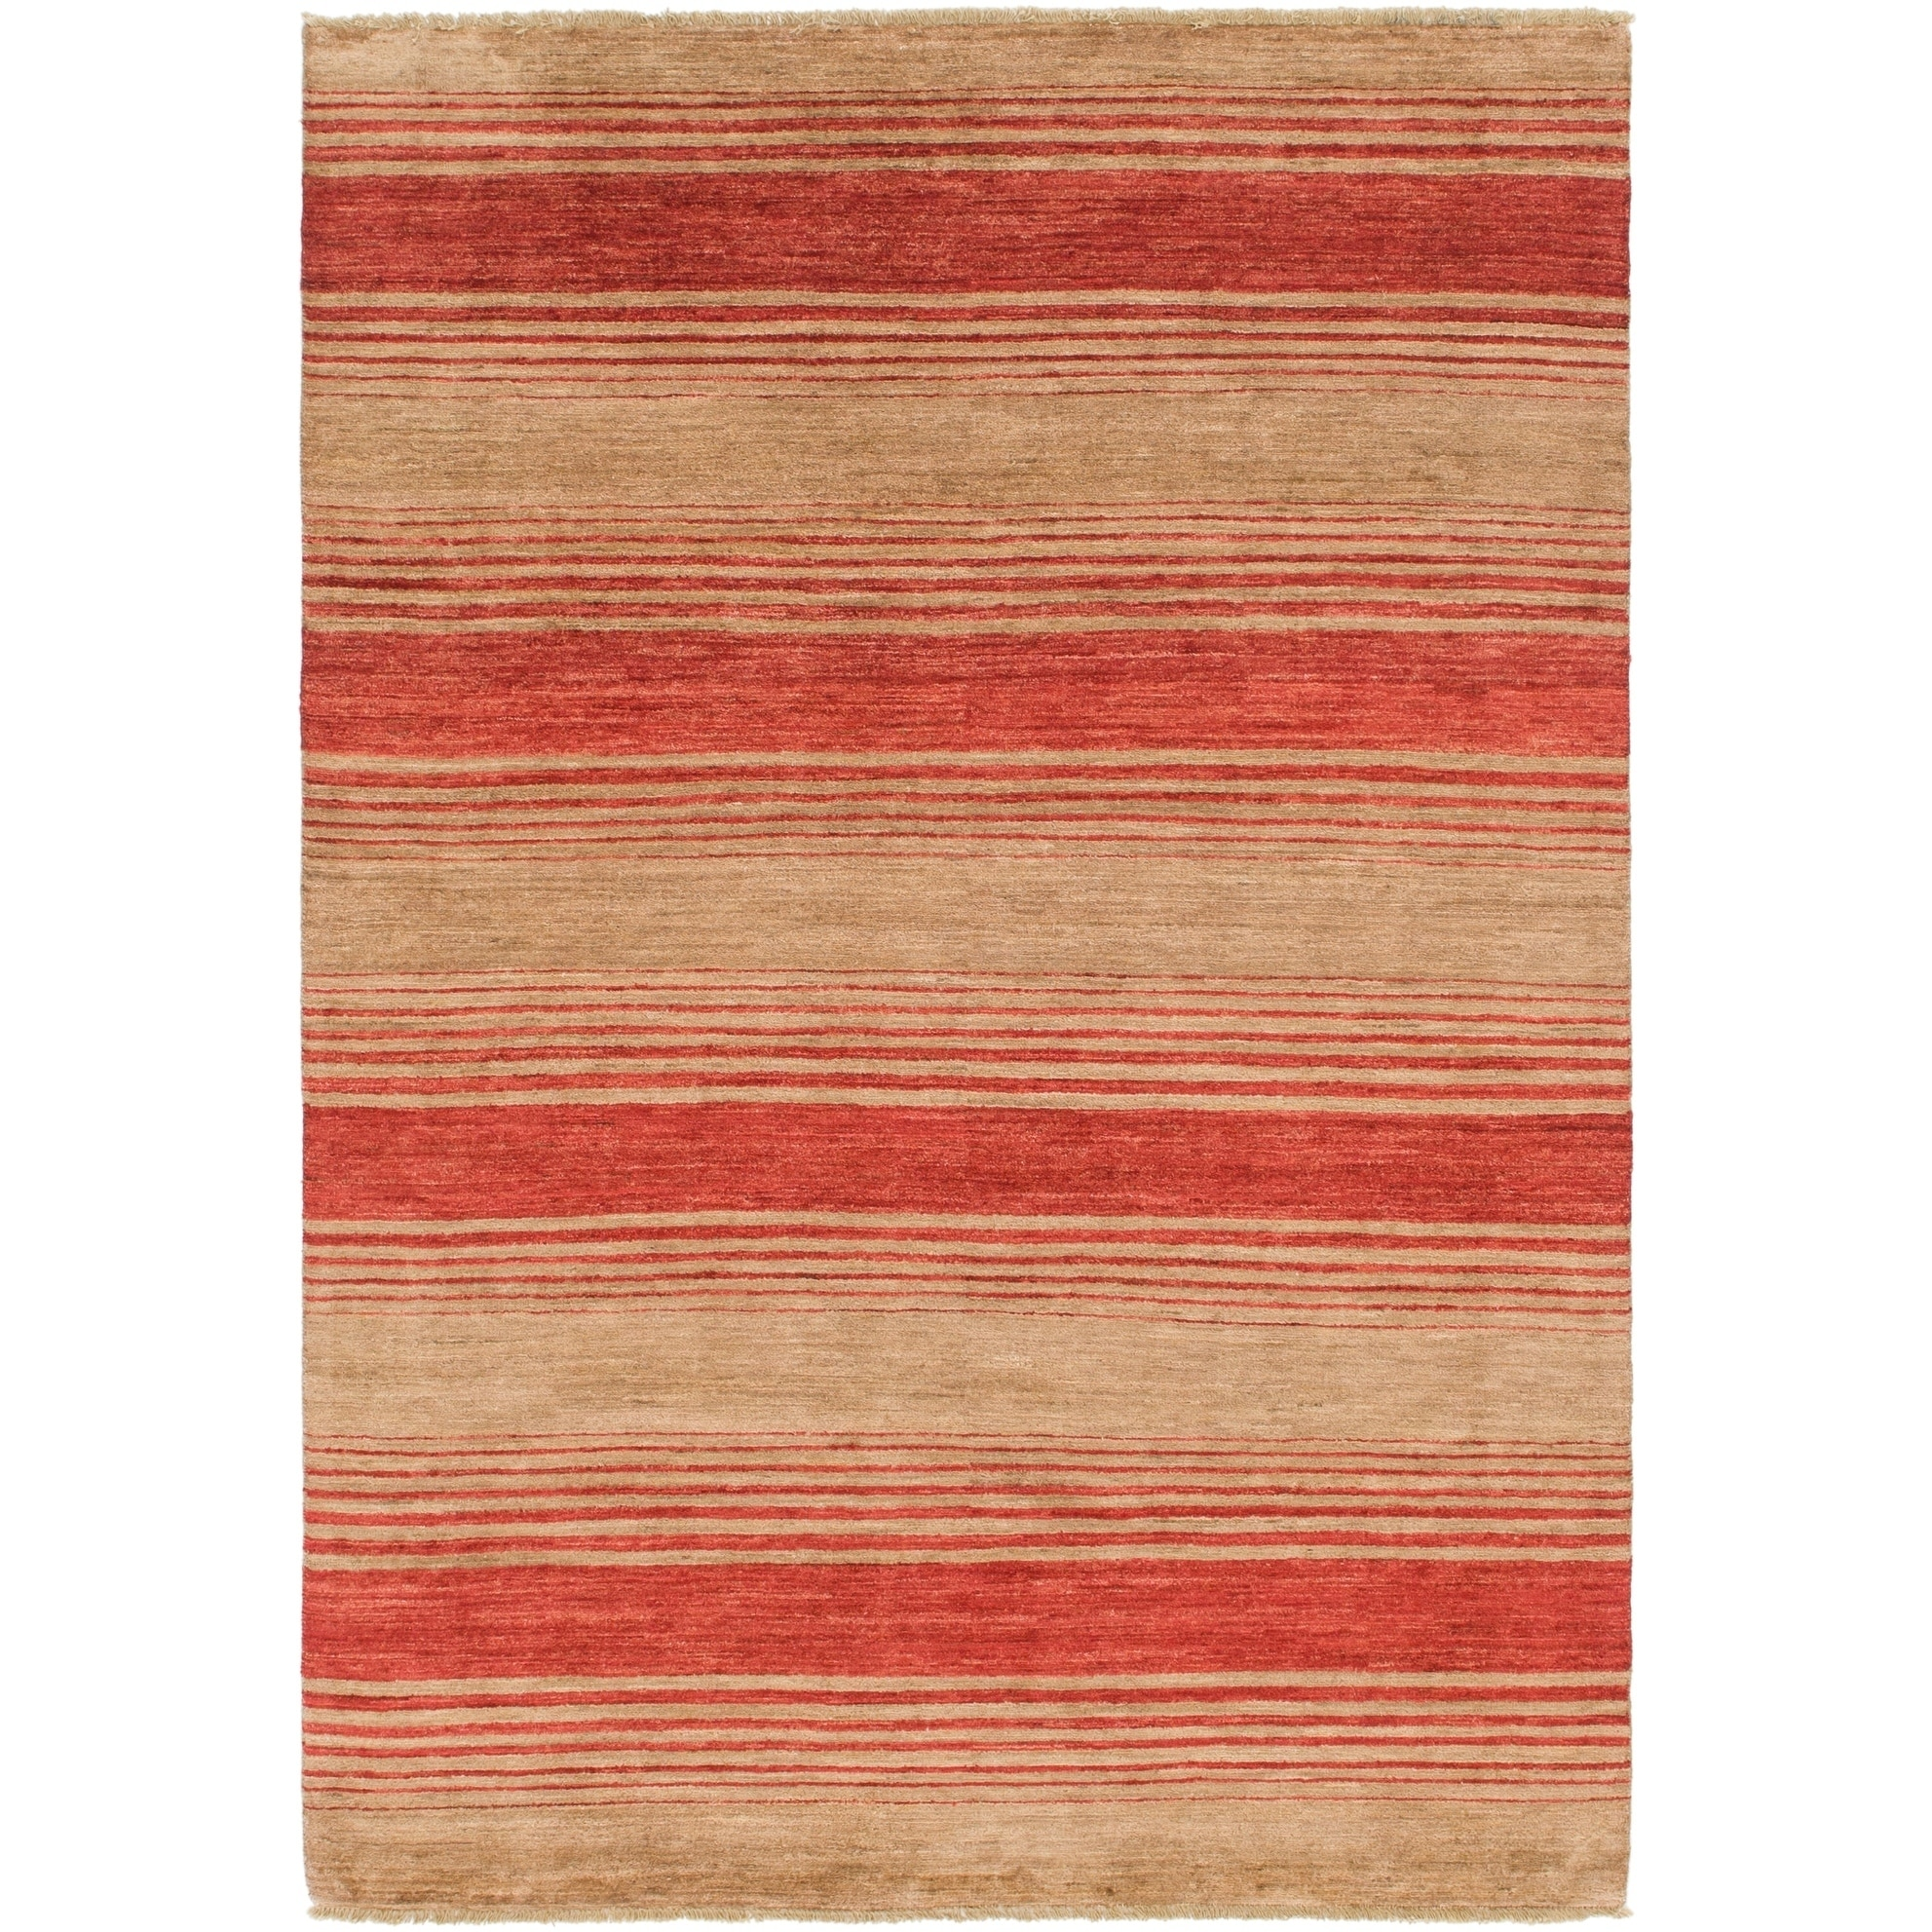 Hand Knotted Kashkuli Gabbeh Wool Area Rug - 5 8 x 8 2 (Red - 5 8 x 8 2)